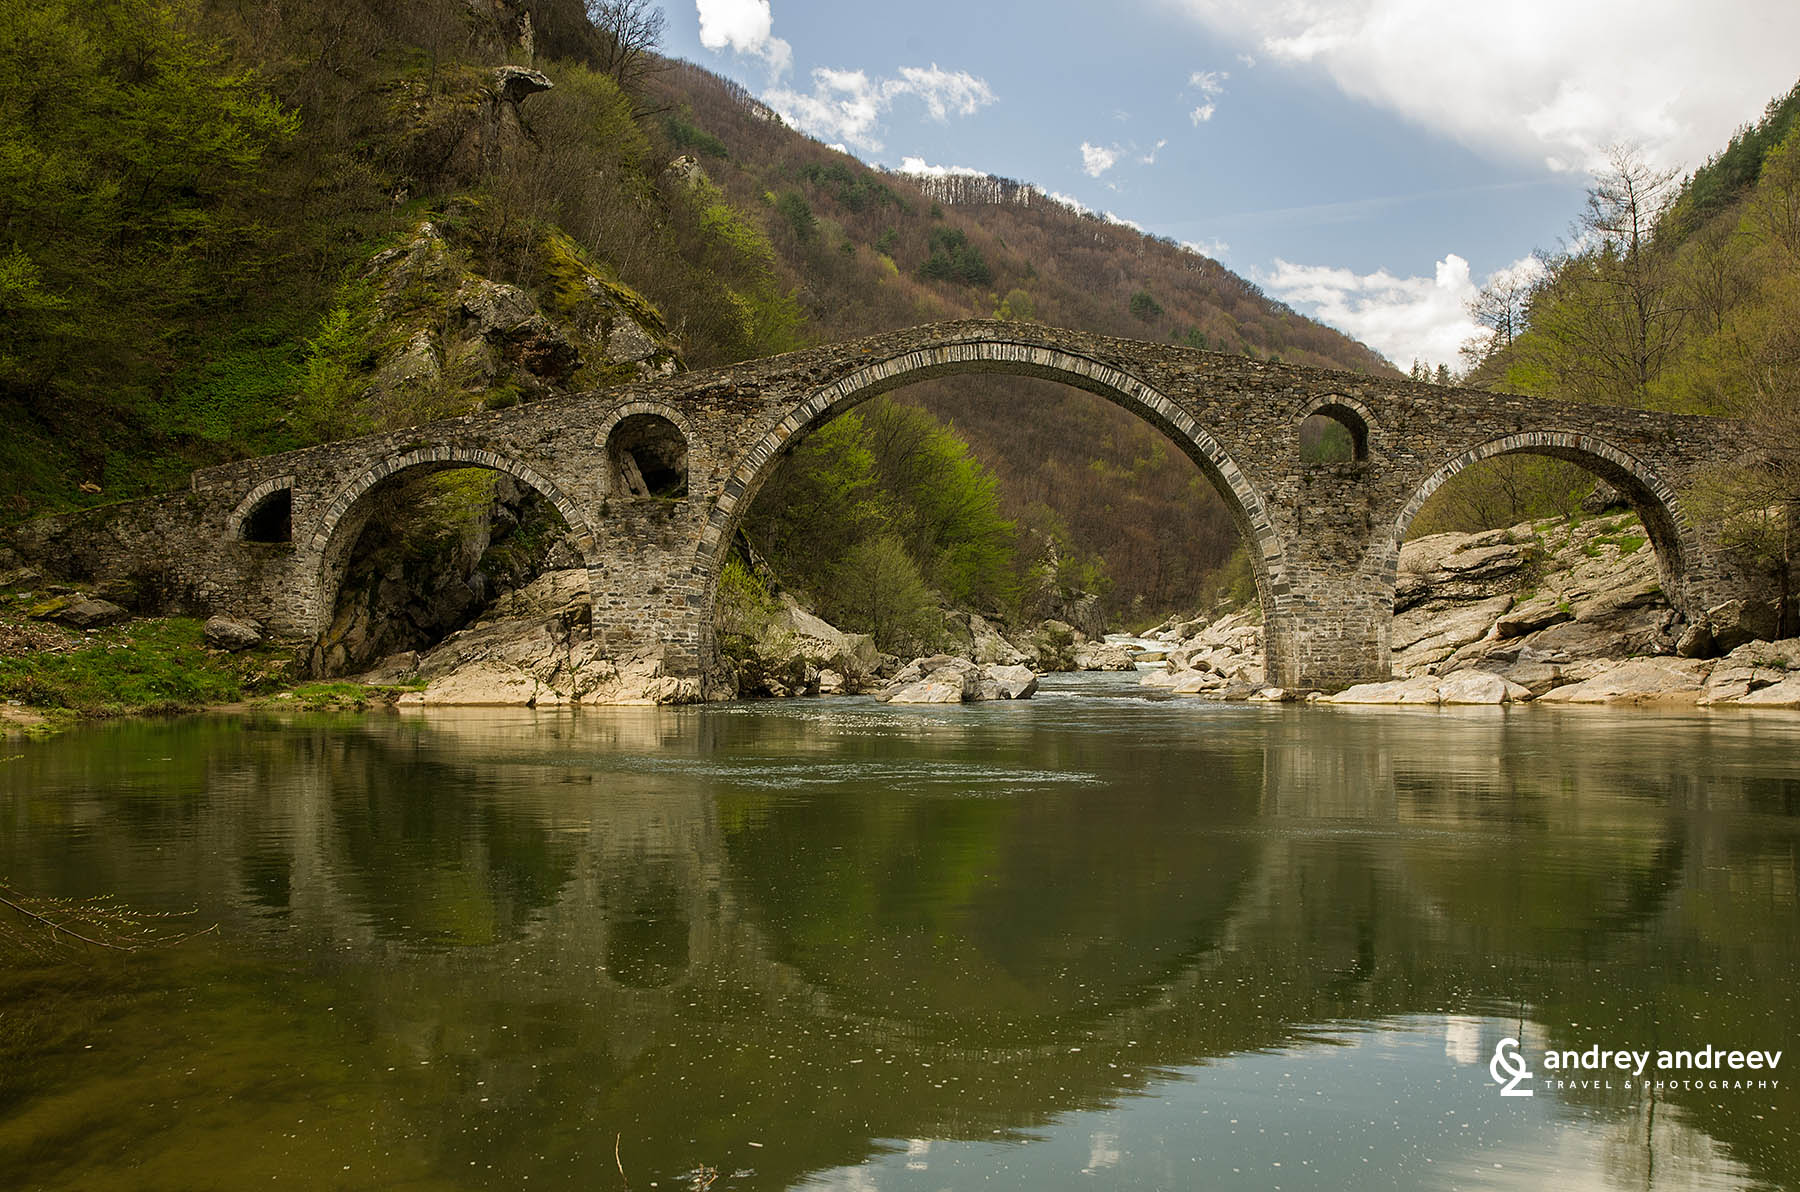 The Devil's bridge in Bulgaria